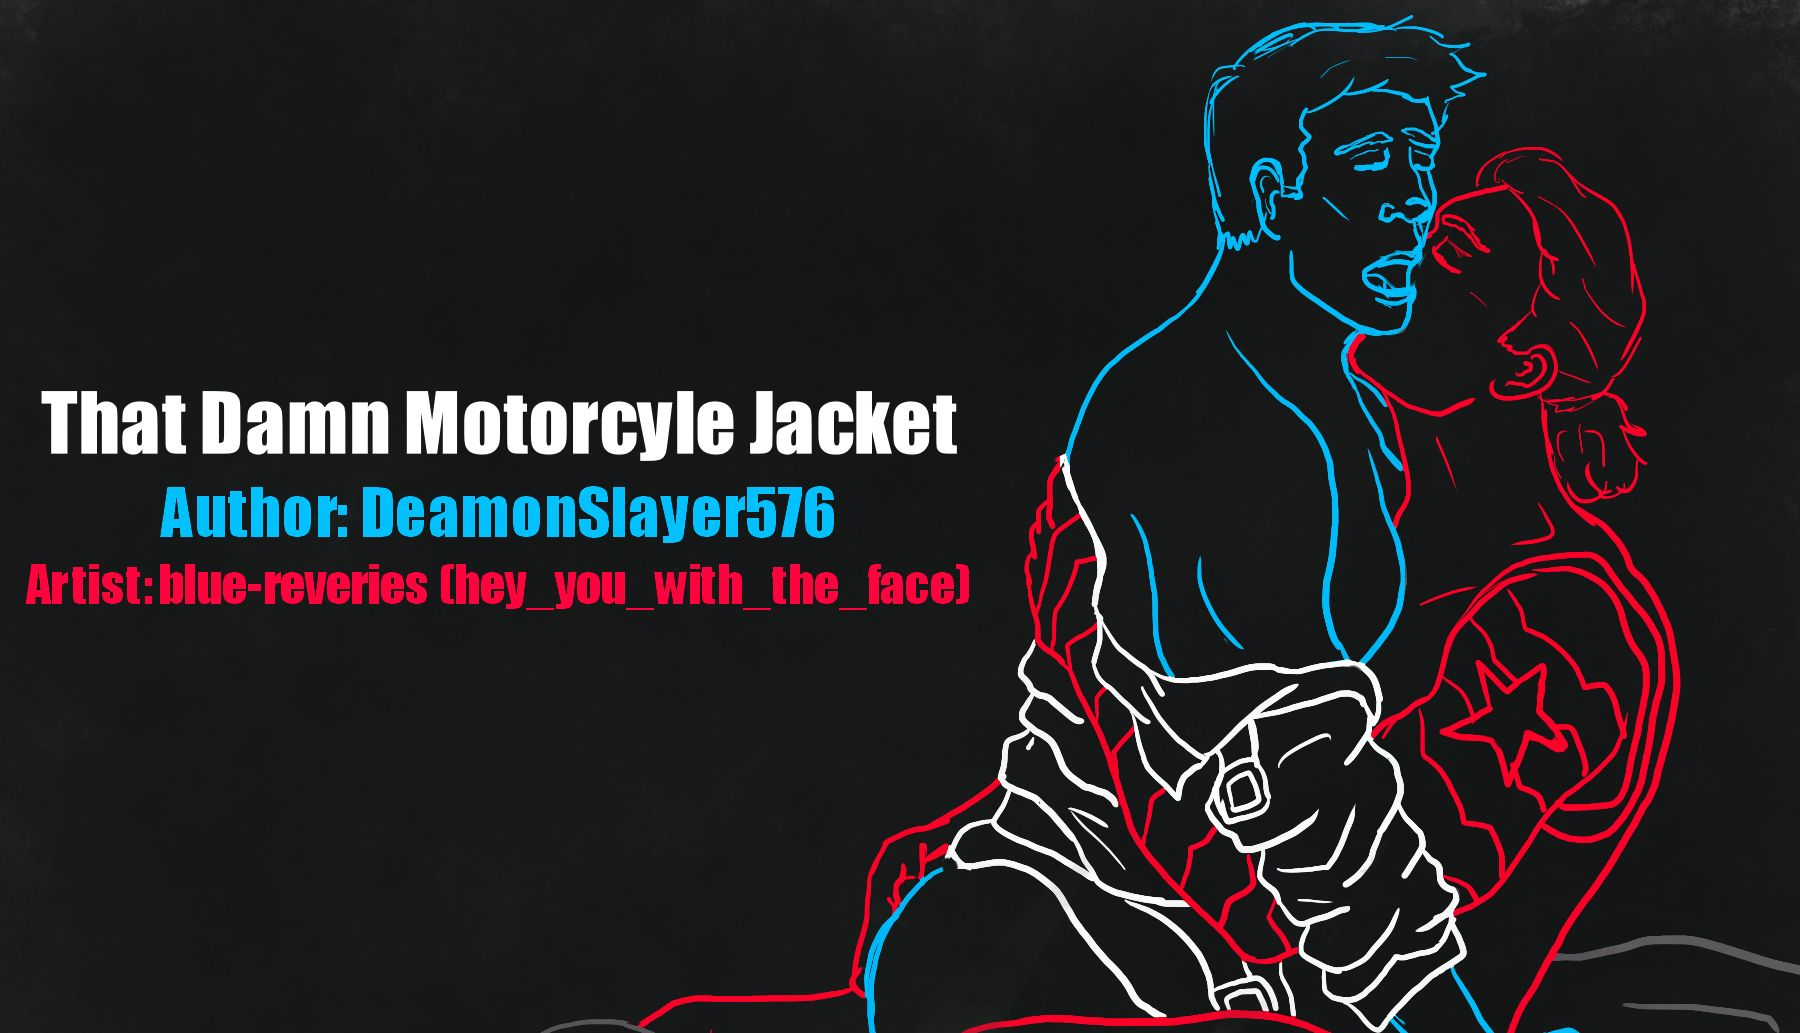 drawn in red, white and blue lines on a black background: Steve riding Bucky, a black jacket down around his elbows while bucky kisses under his jaw